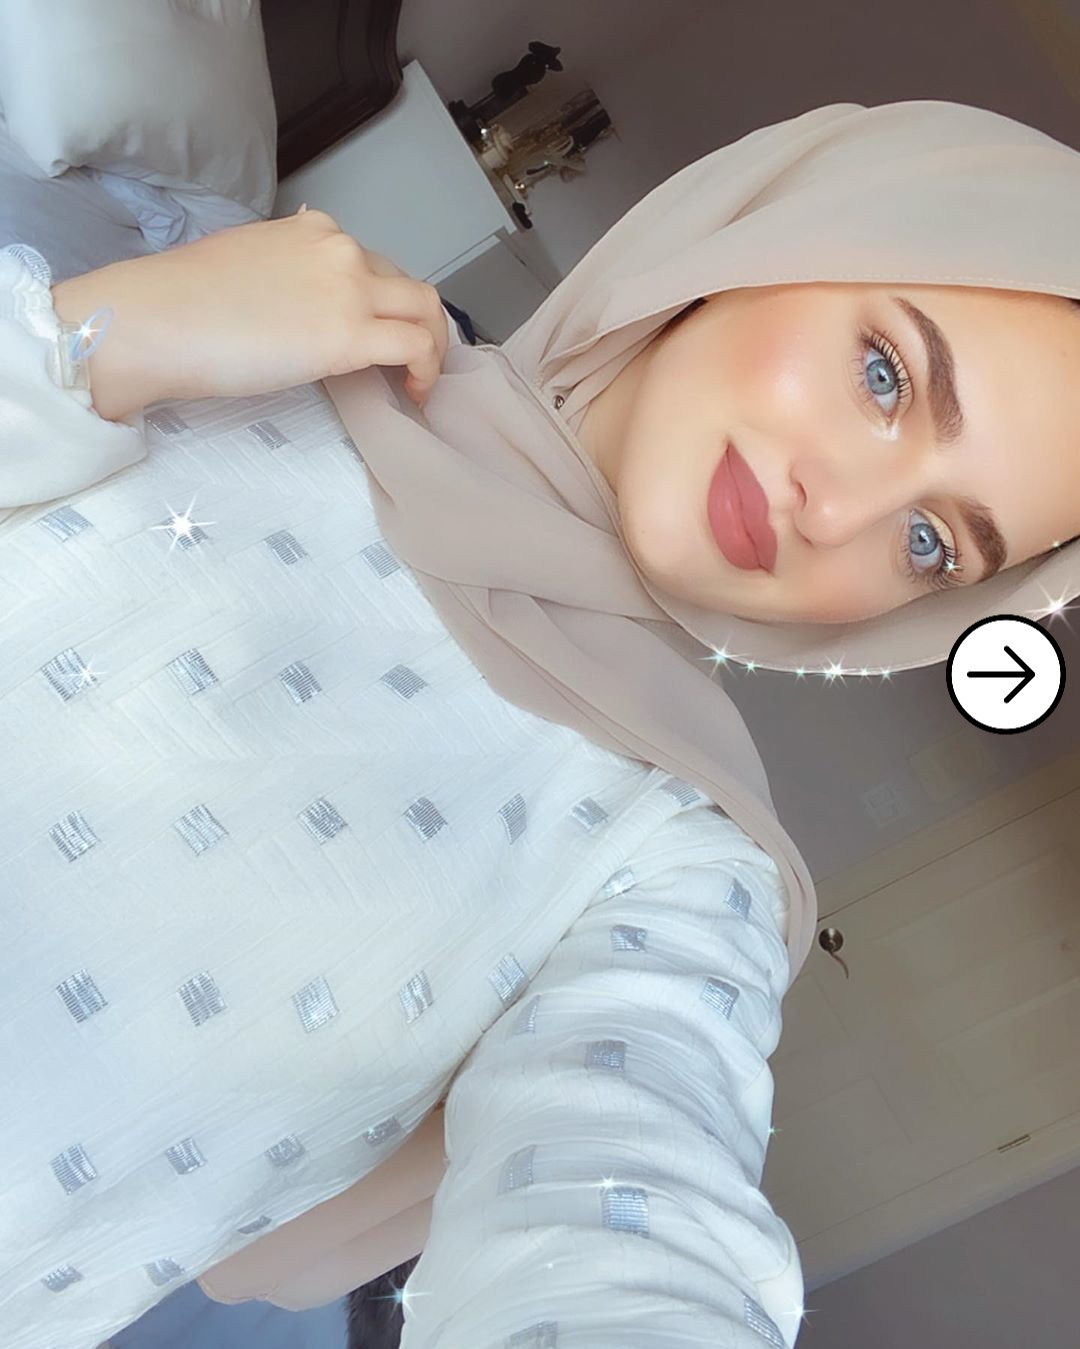 Noura Abdi: Hijabi instagram model that's breaking the internet 1